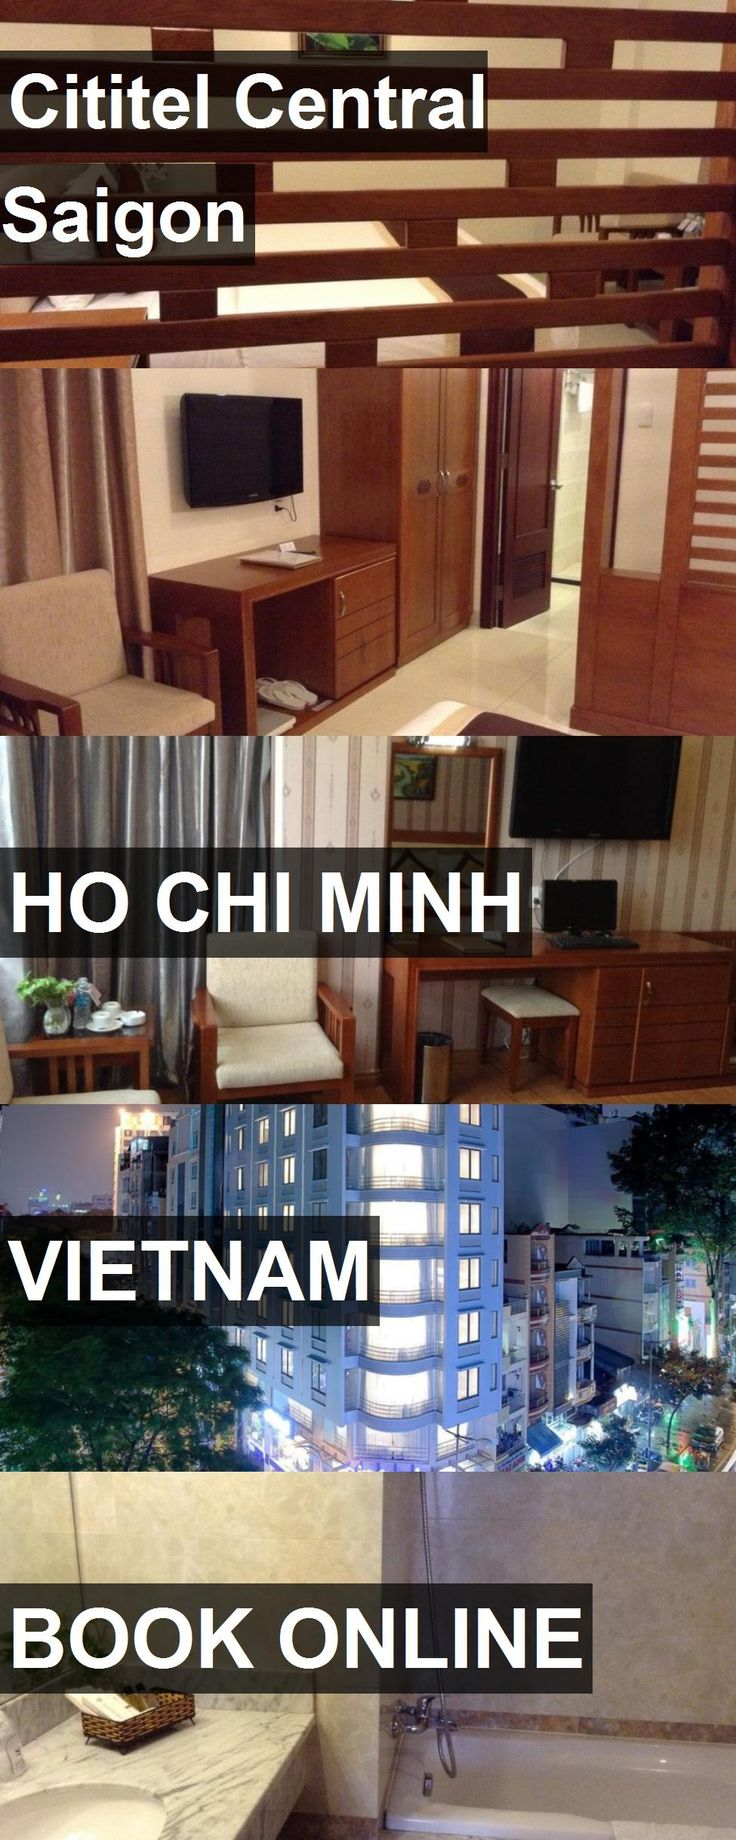 Hotel Cititel Central Saigon in Ho Chi Minh, Vietnam. For more information, photos, reviews and best prices please follow the link. #Vietnam #HoChiMinh #travel #vacation #hotel